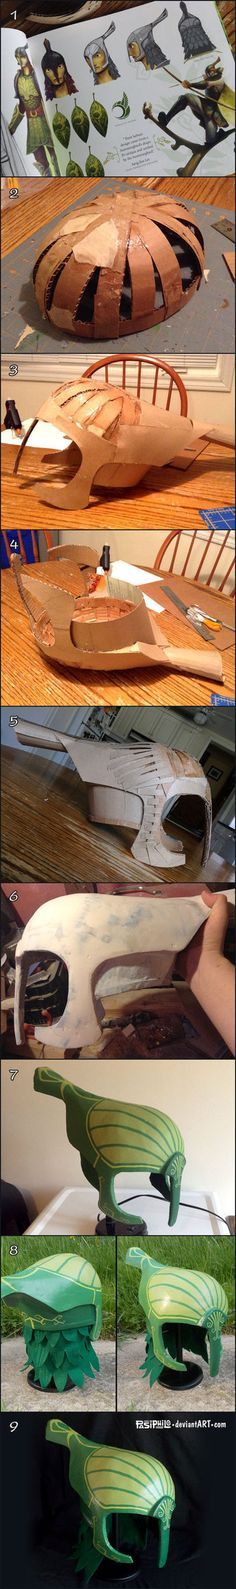 These are the general steps I went through to construct my Leaf Man cosplay helmet. This was the first such helmet I'd ever made, so I don't consider myself an expert by any stretch, but perhaps my...